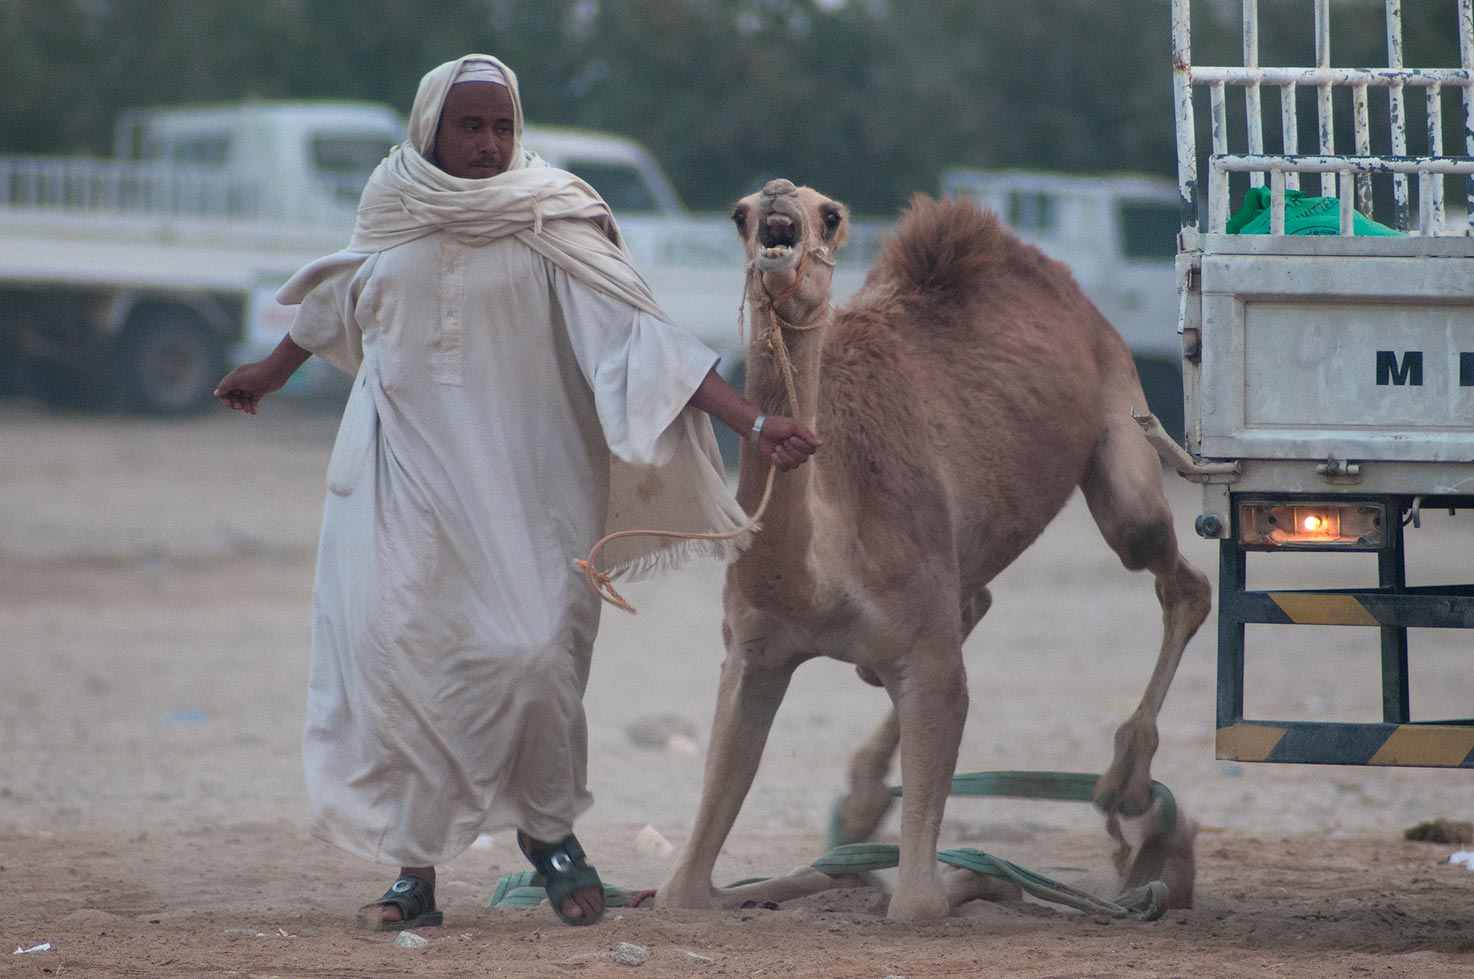 Taming a kneeled camel in Camel Market (Souq), Wholesale Markets area. Doha, Qatar